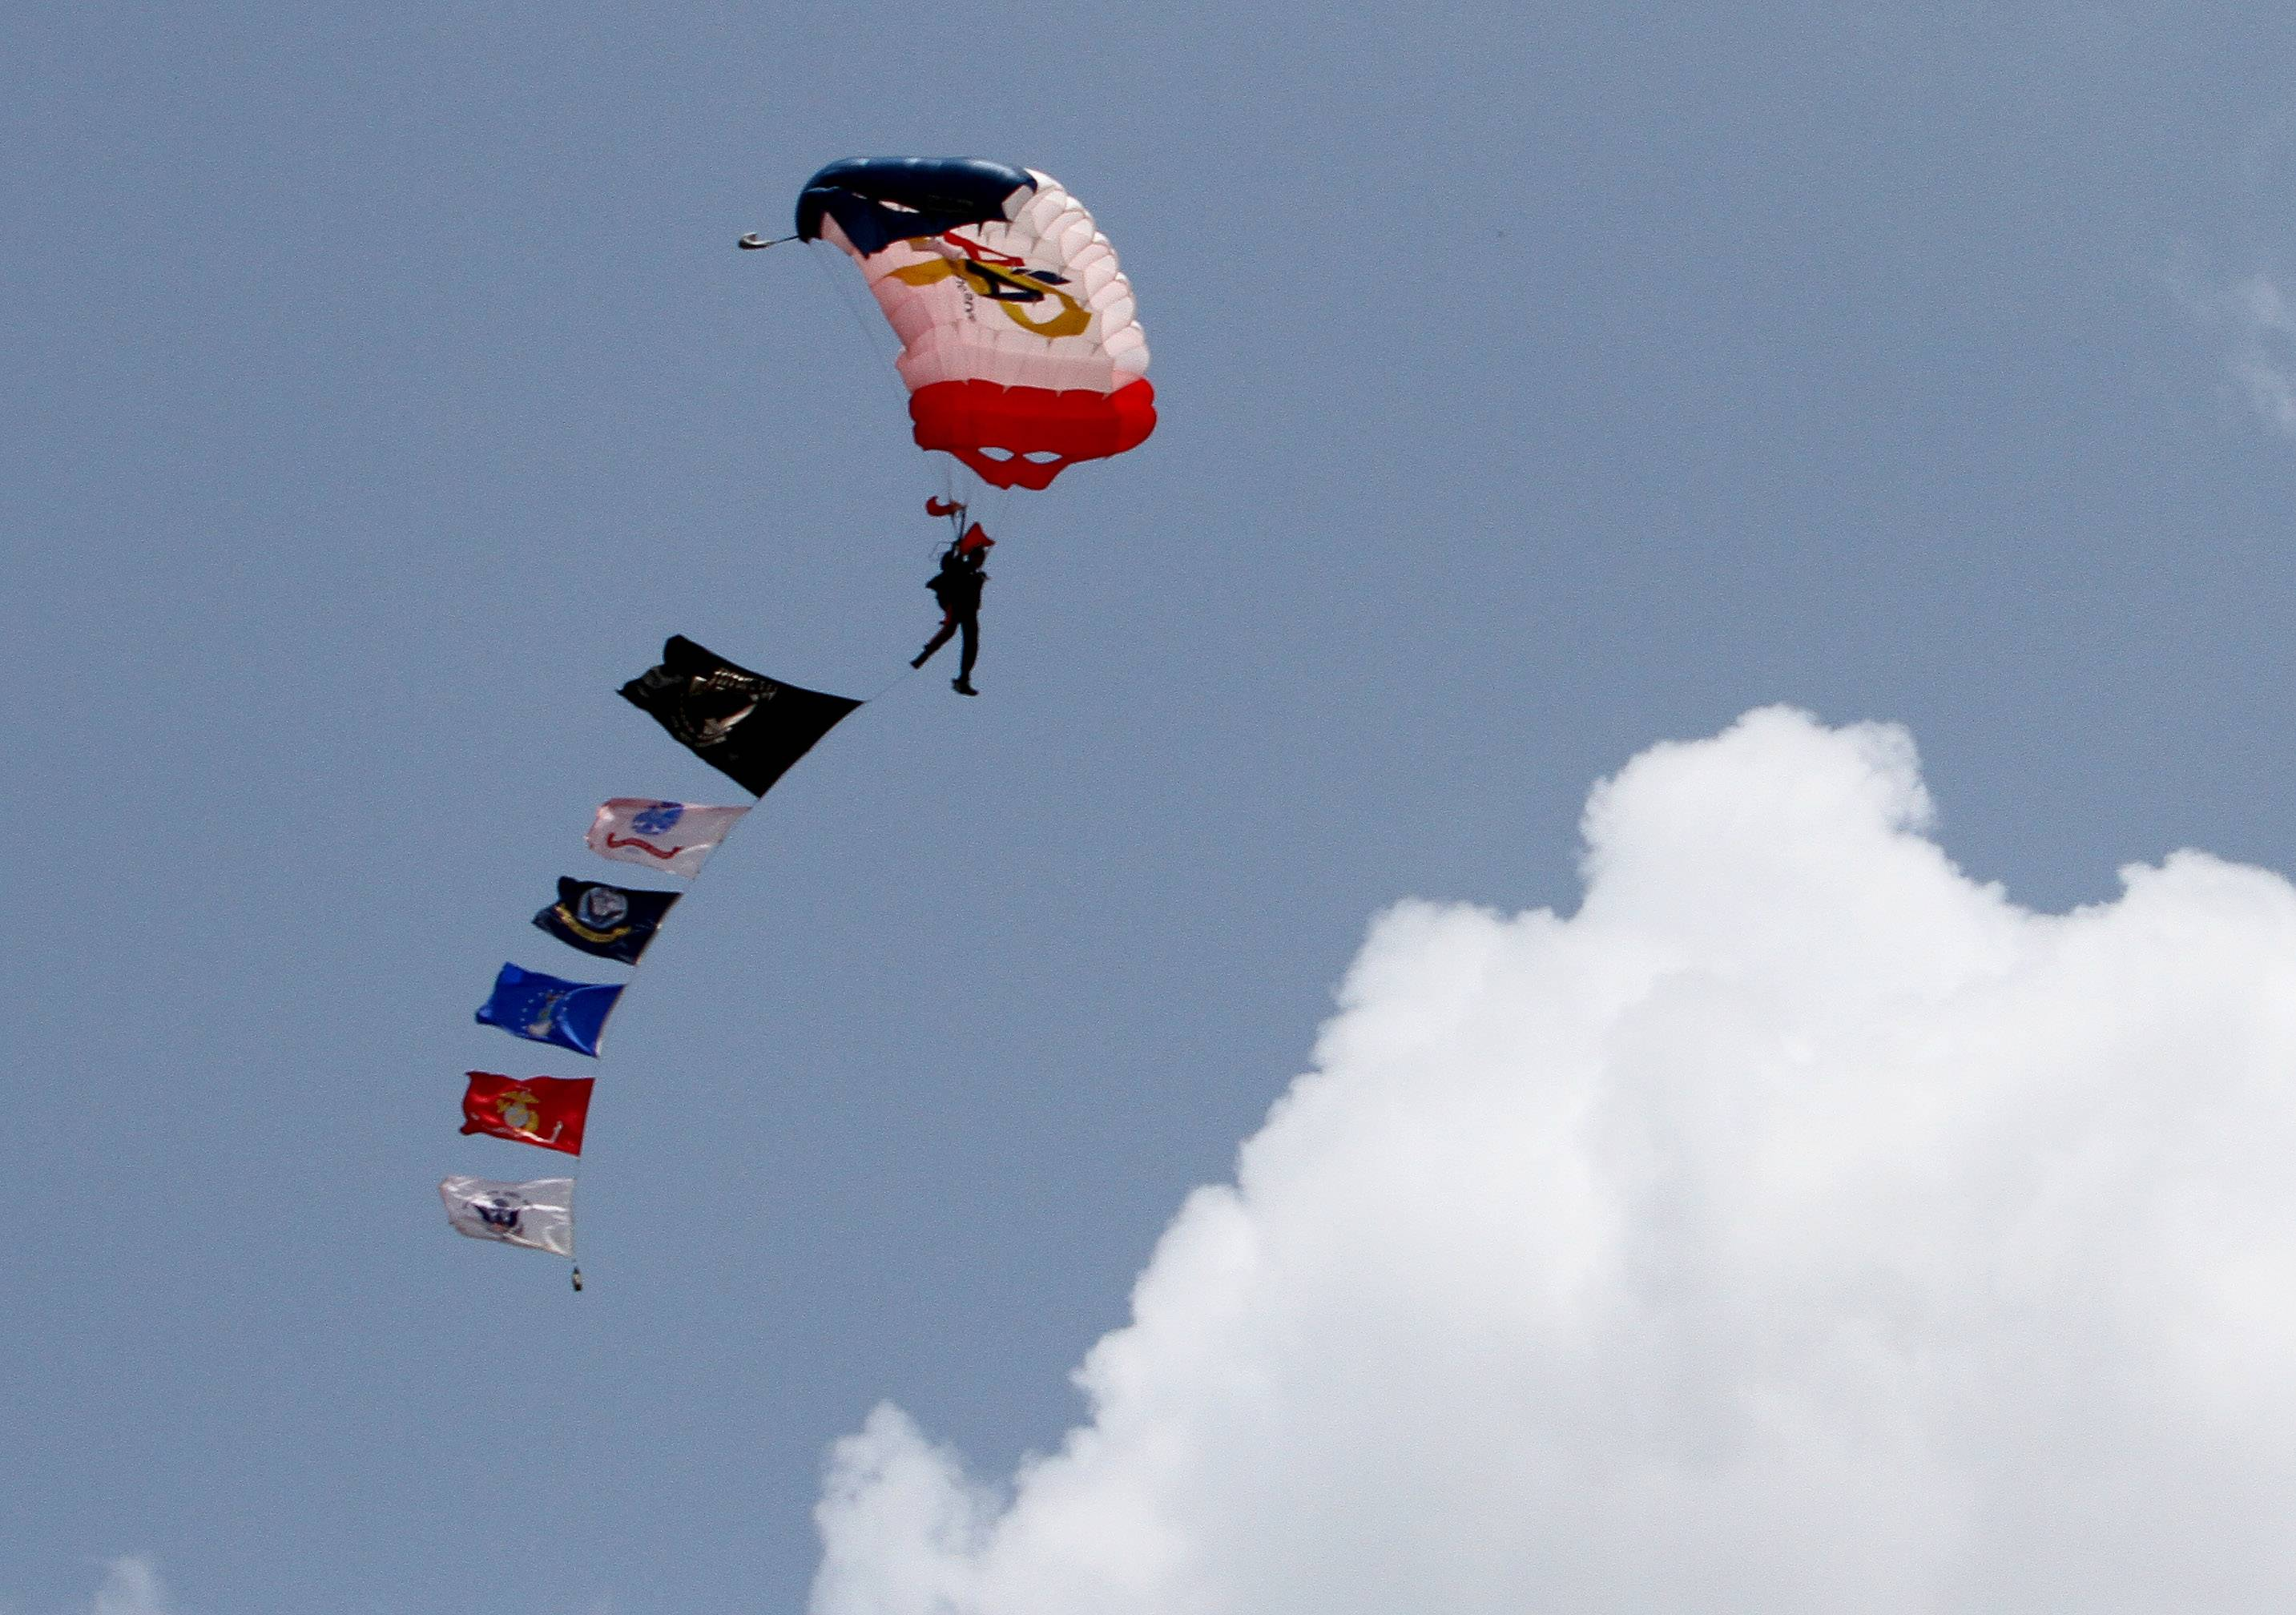 Local veterans heal with skydiving, land at Cantigny